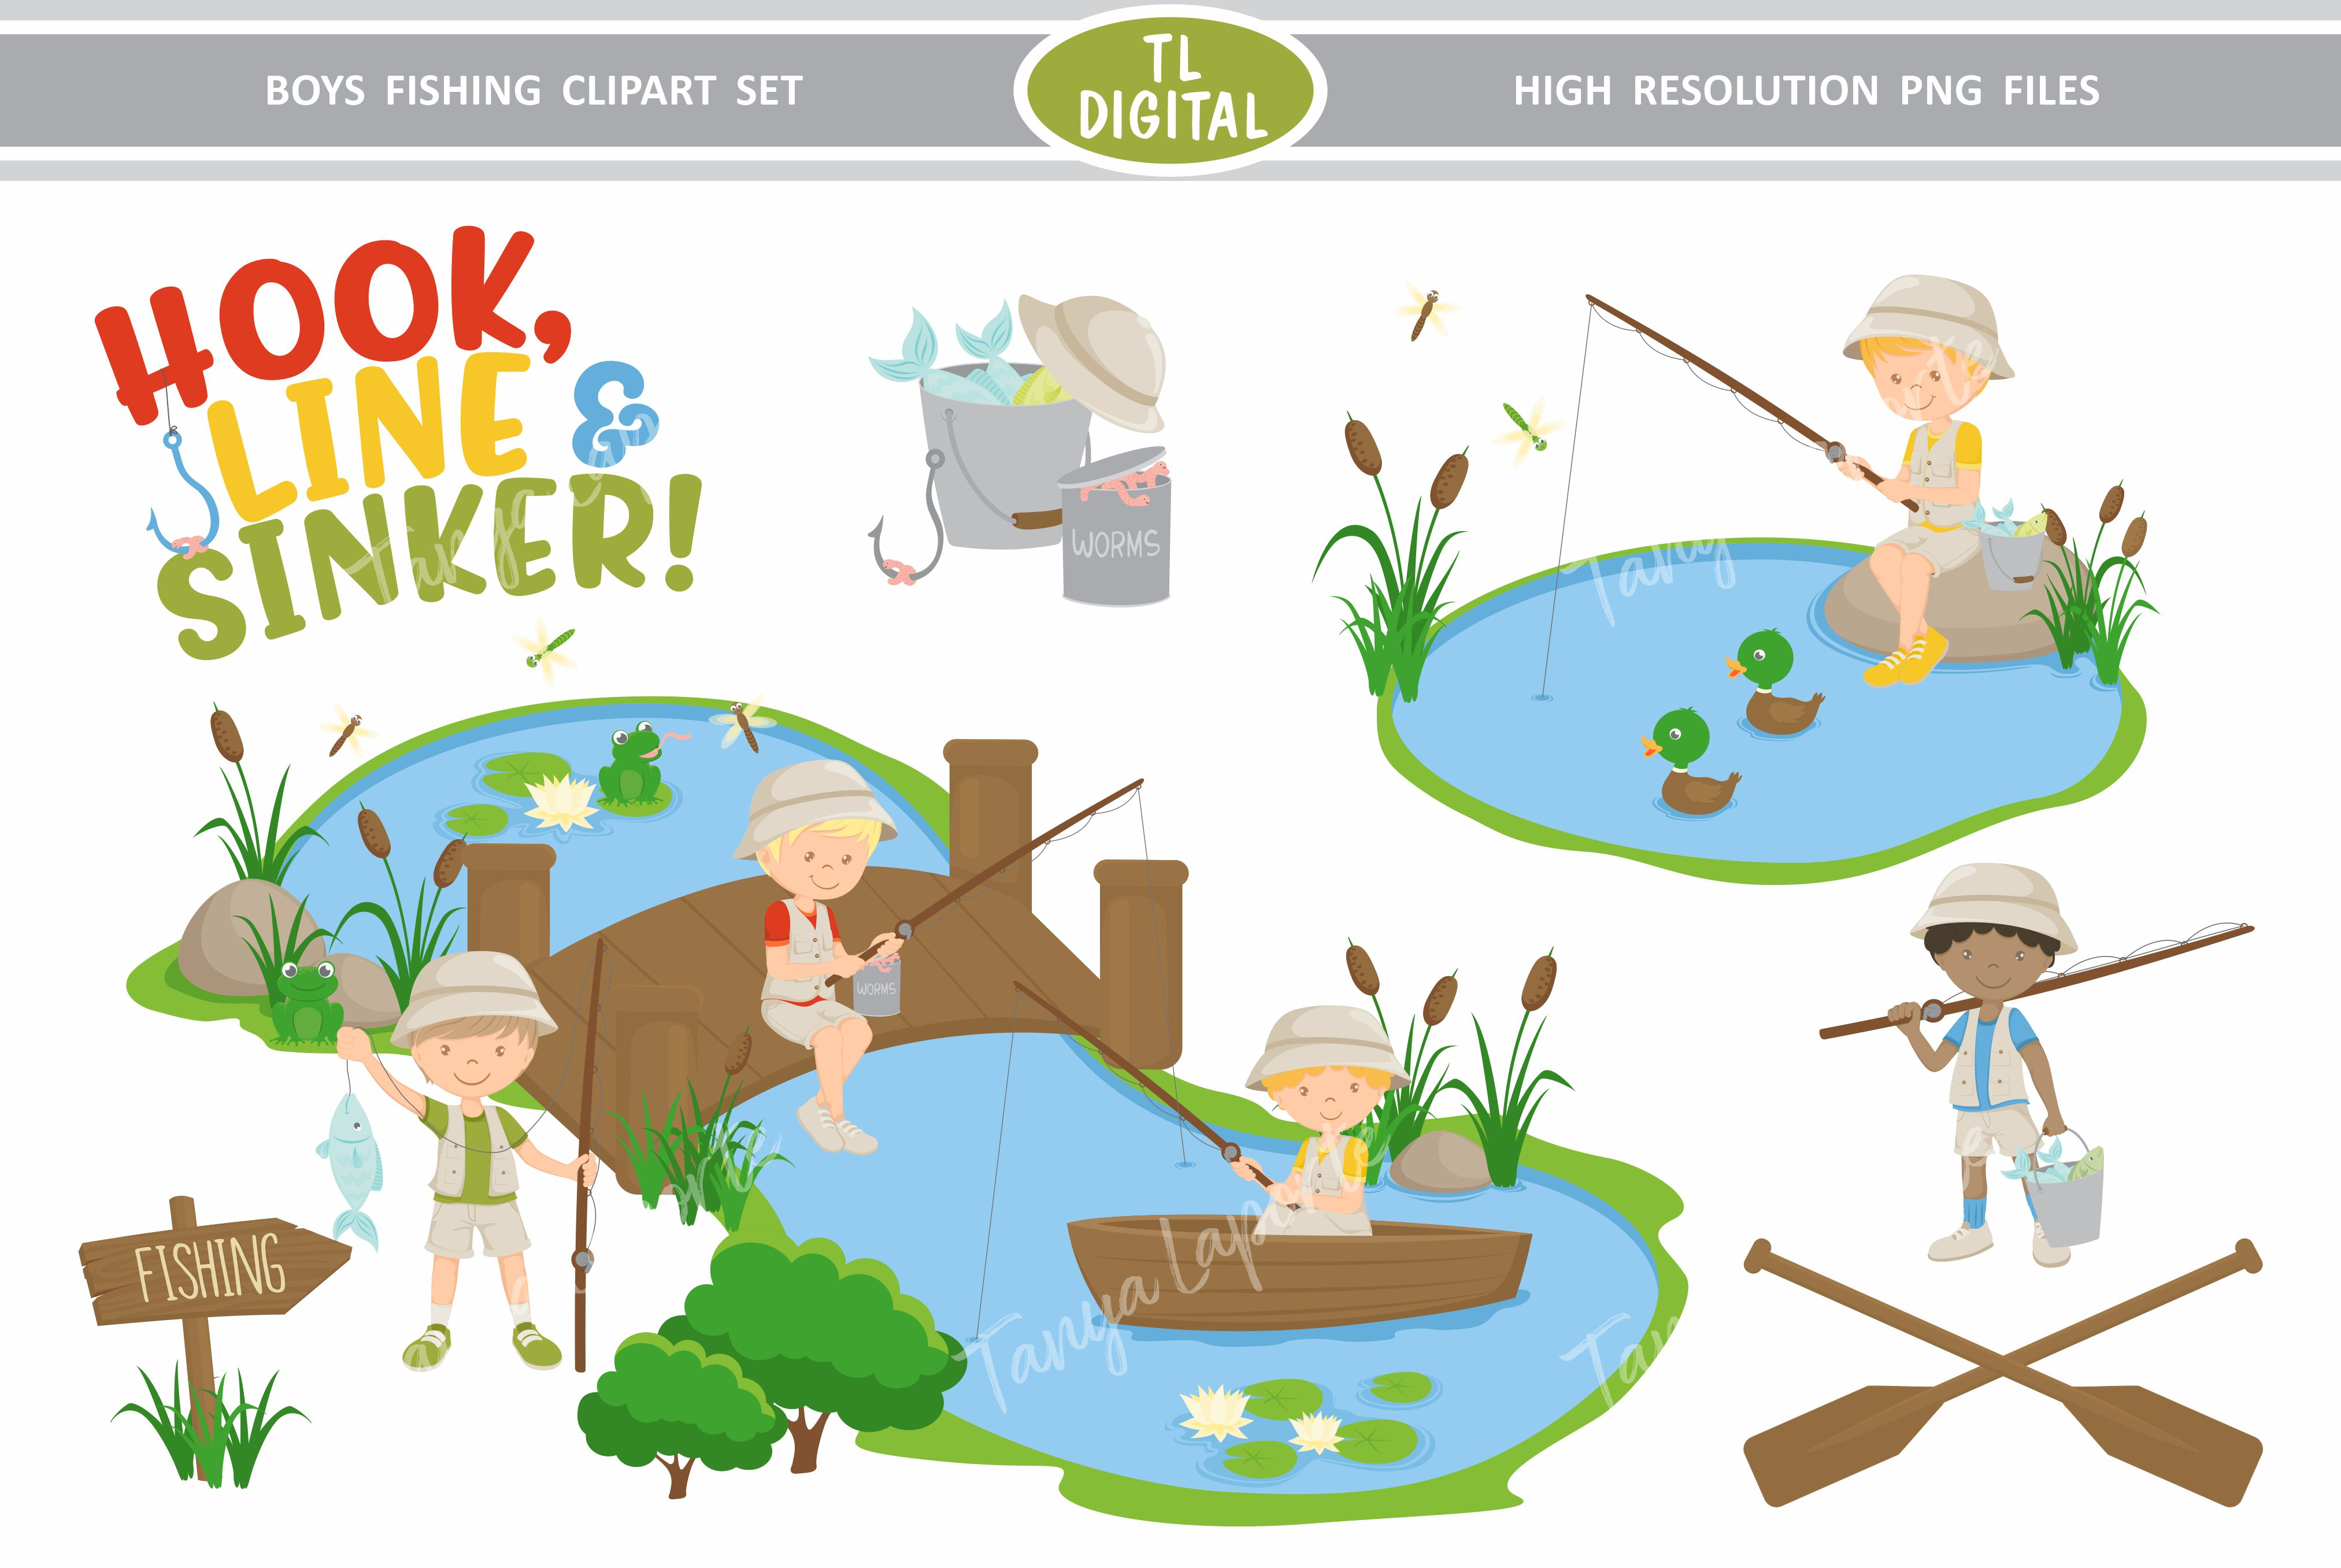 Download Free Boys Fishing Clipart Set Graphic By Tl Digital Creative Fabrica for Cricut Explore, Silhouette and other cutting machines.